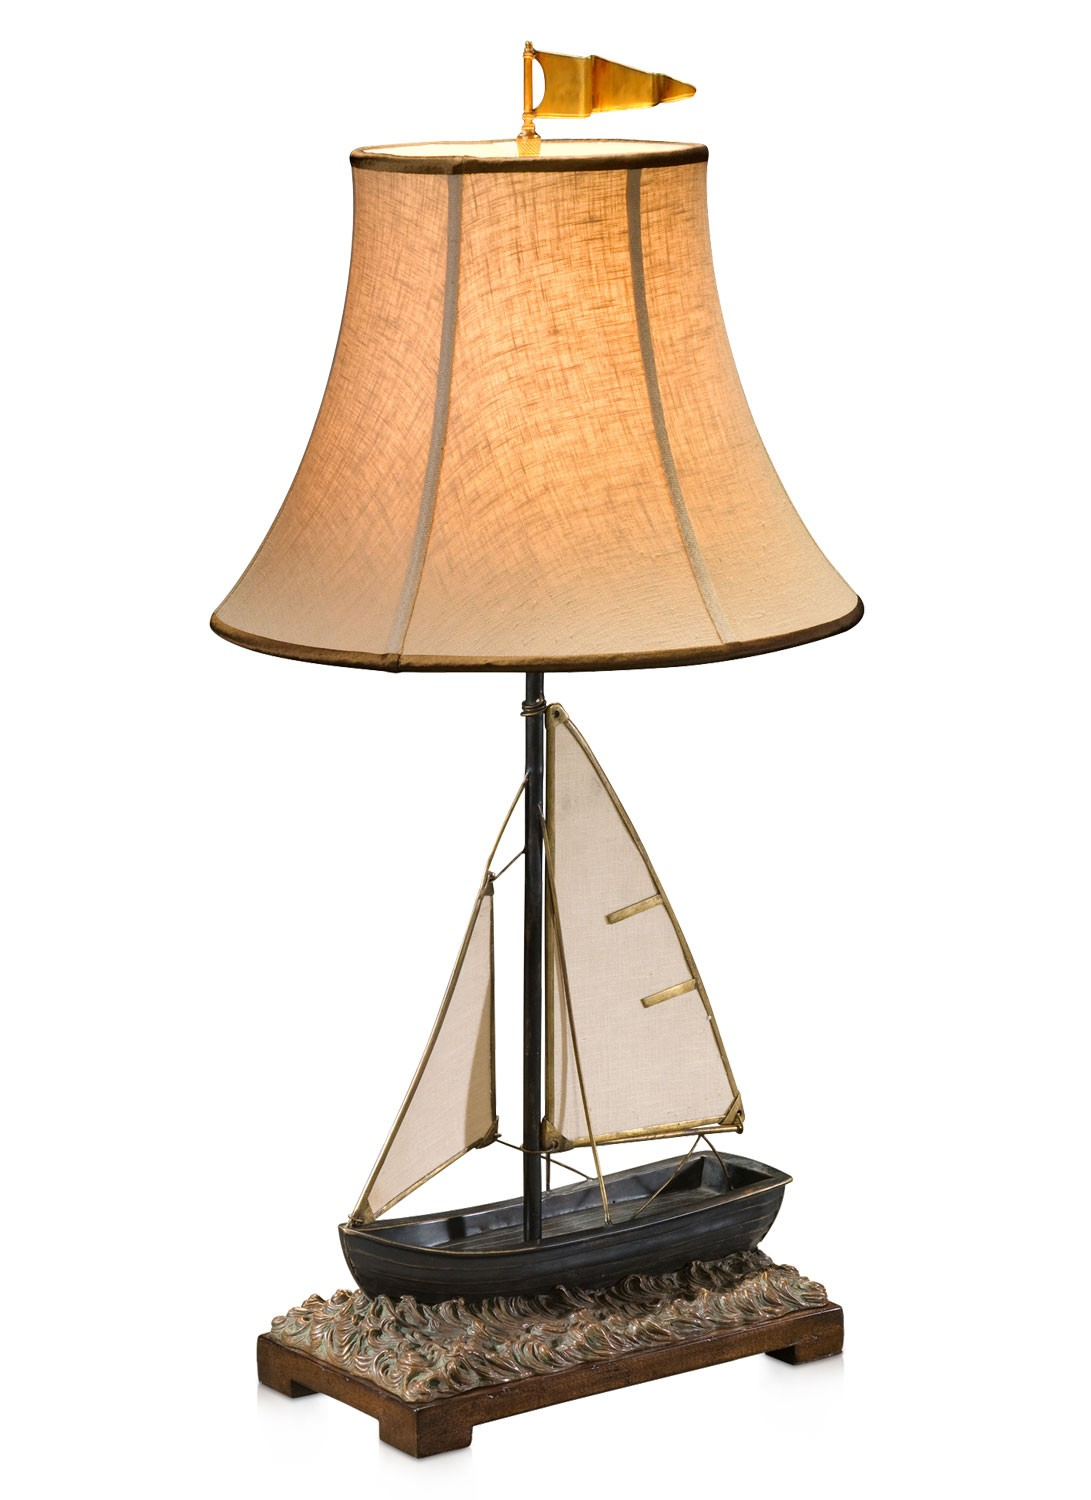 A finely cast brass Sailing boat lamp